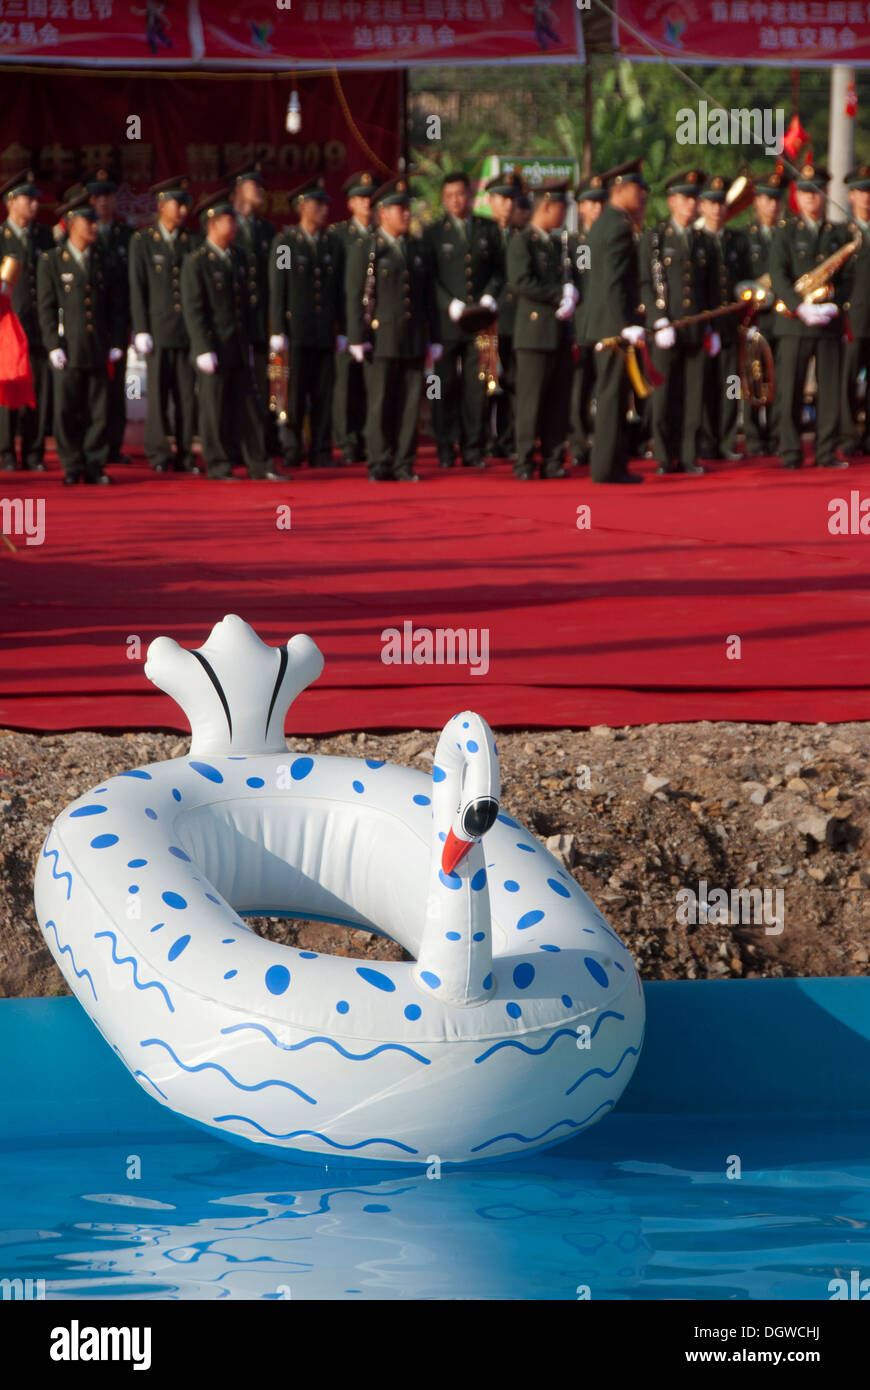 Military Band of the Army behind a swan-shaped inflatable boat, Festival in Jiangcheng, Pu'er City, Yunnan Province Stock Photo